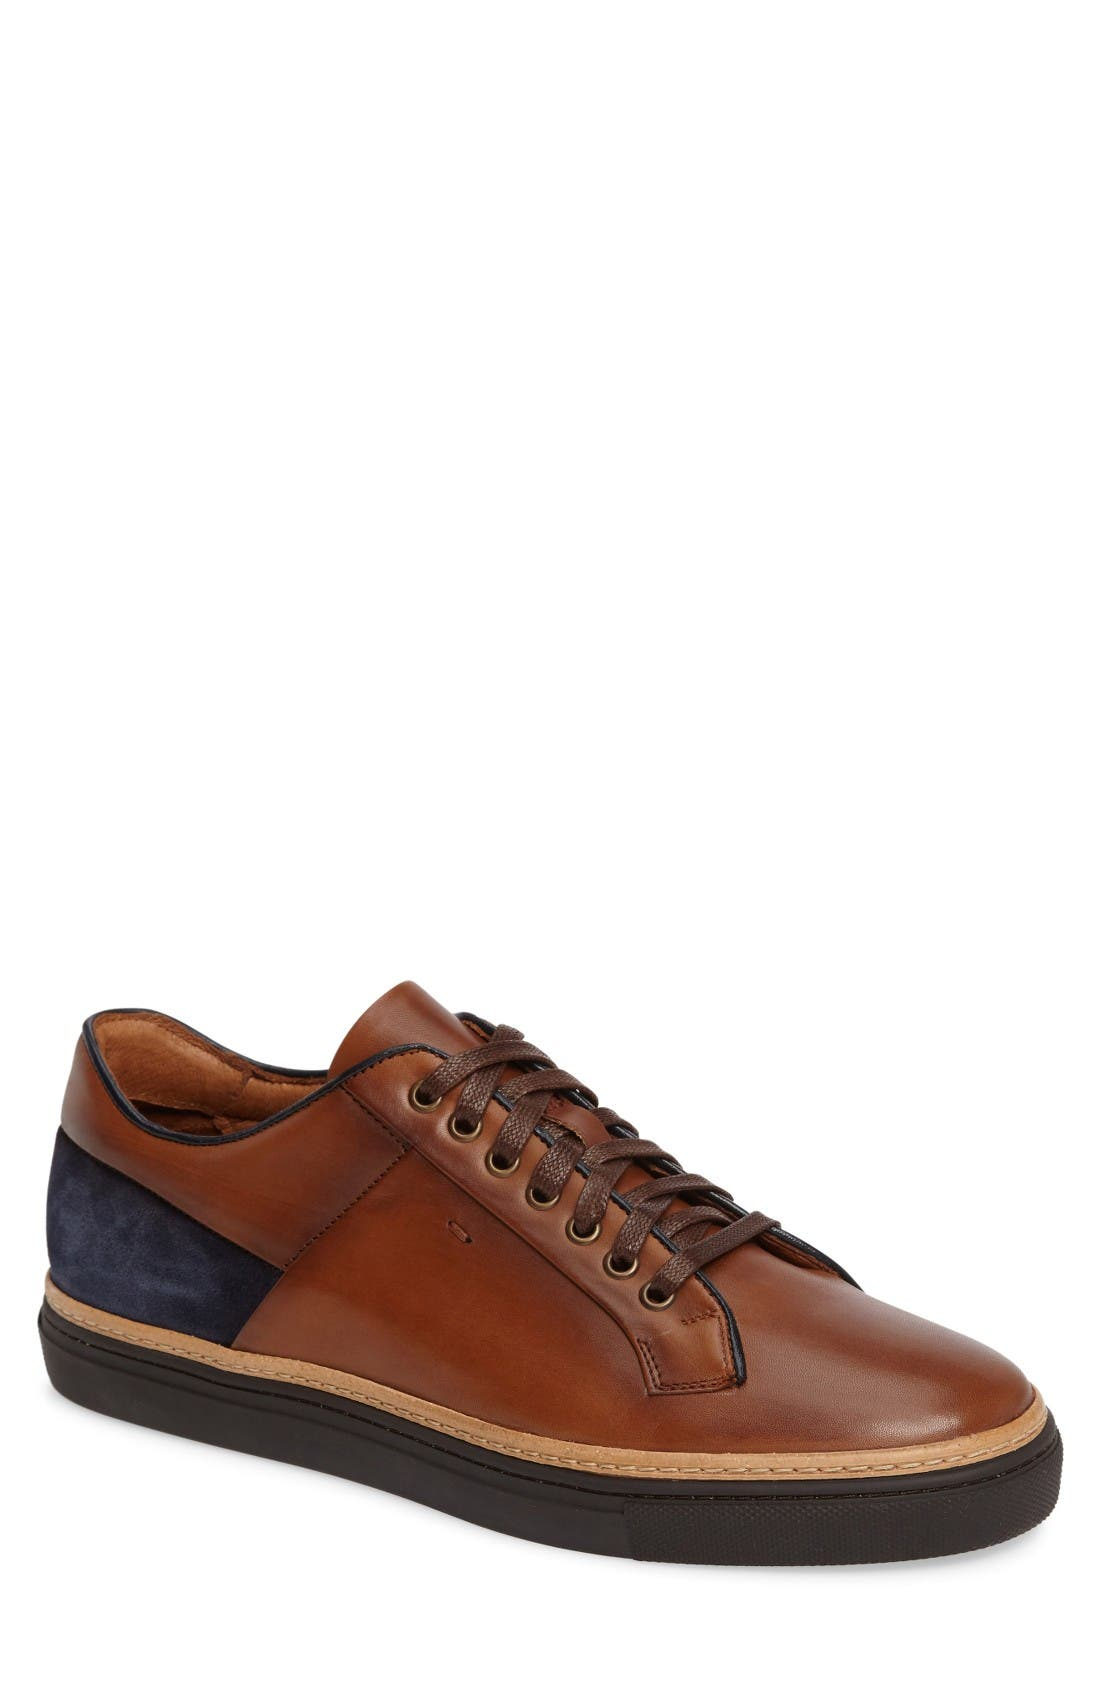 KENNETH COLE NEW YORK Prem-Ise Sneaker